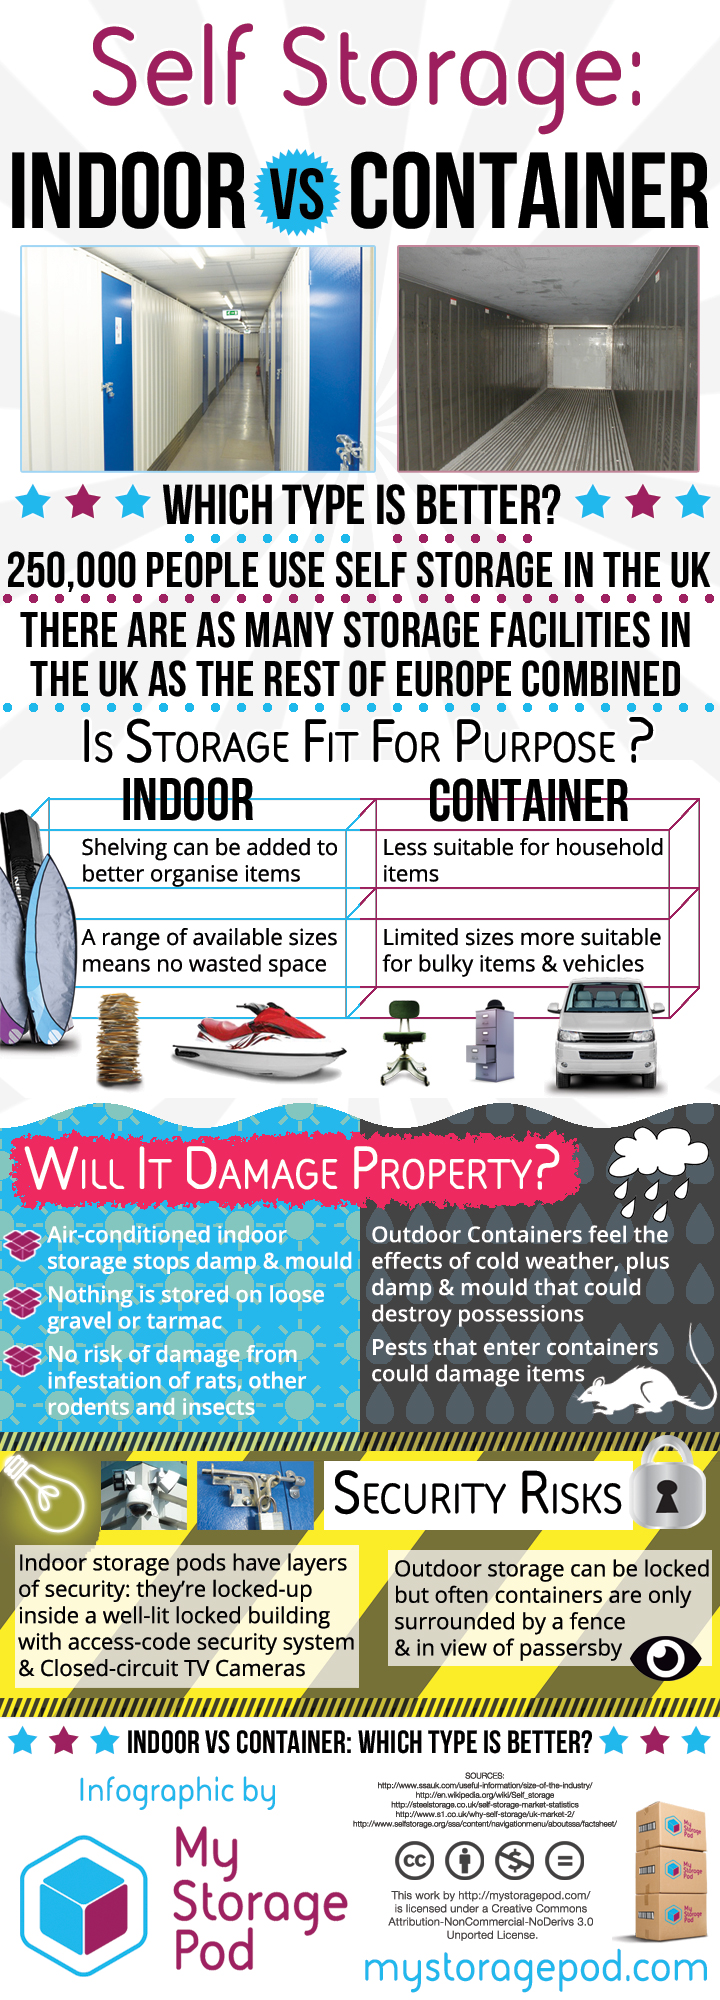 Self Storage: Indoor vs Container - Which is best? Infographic by My Storage Hub